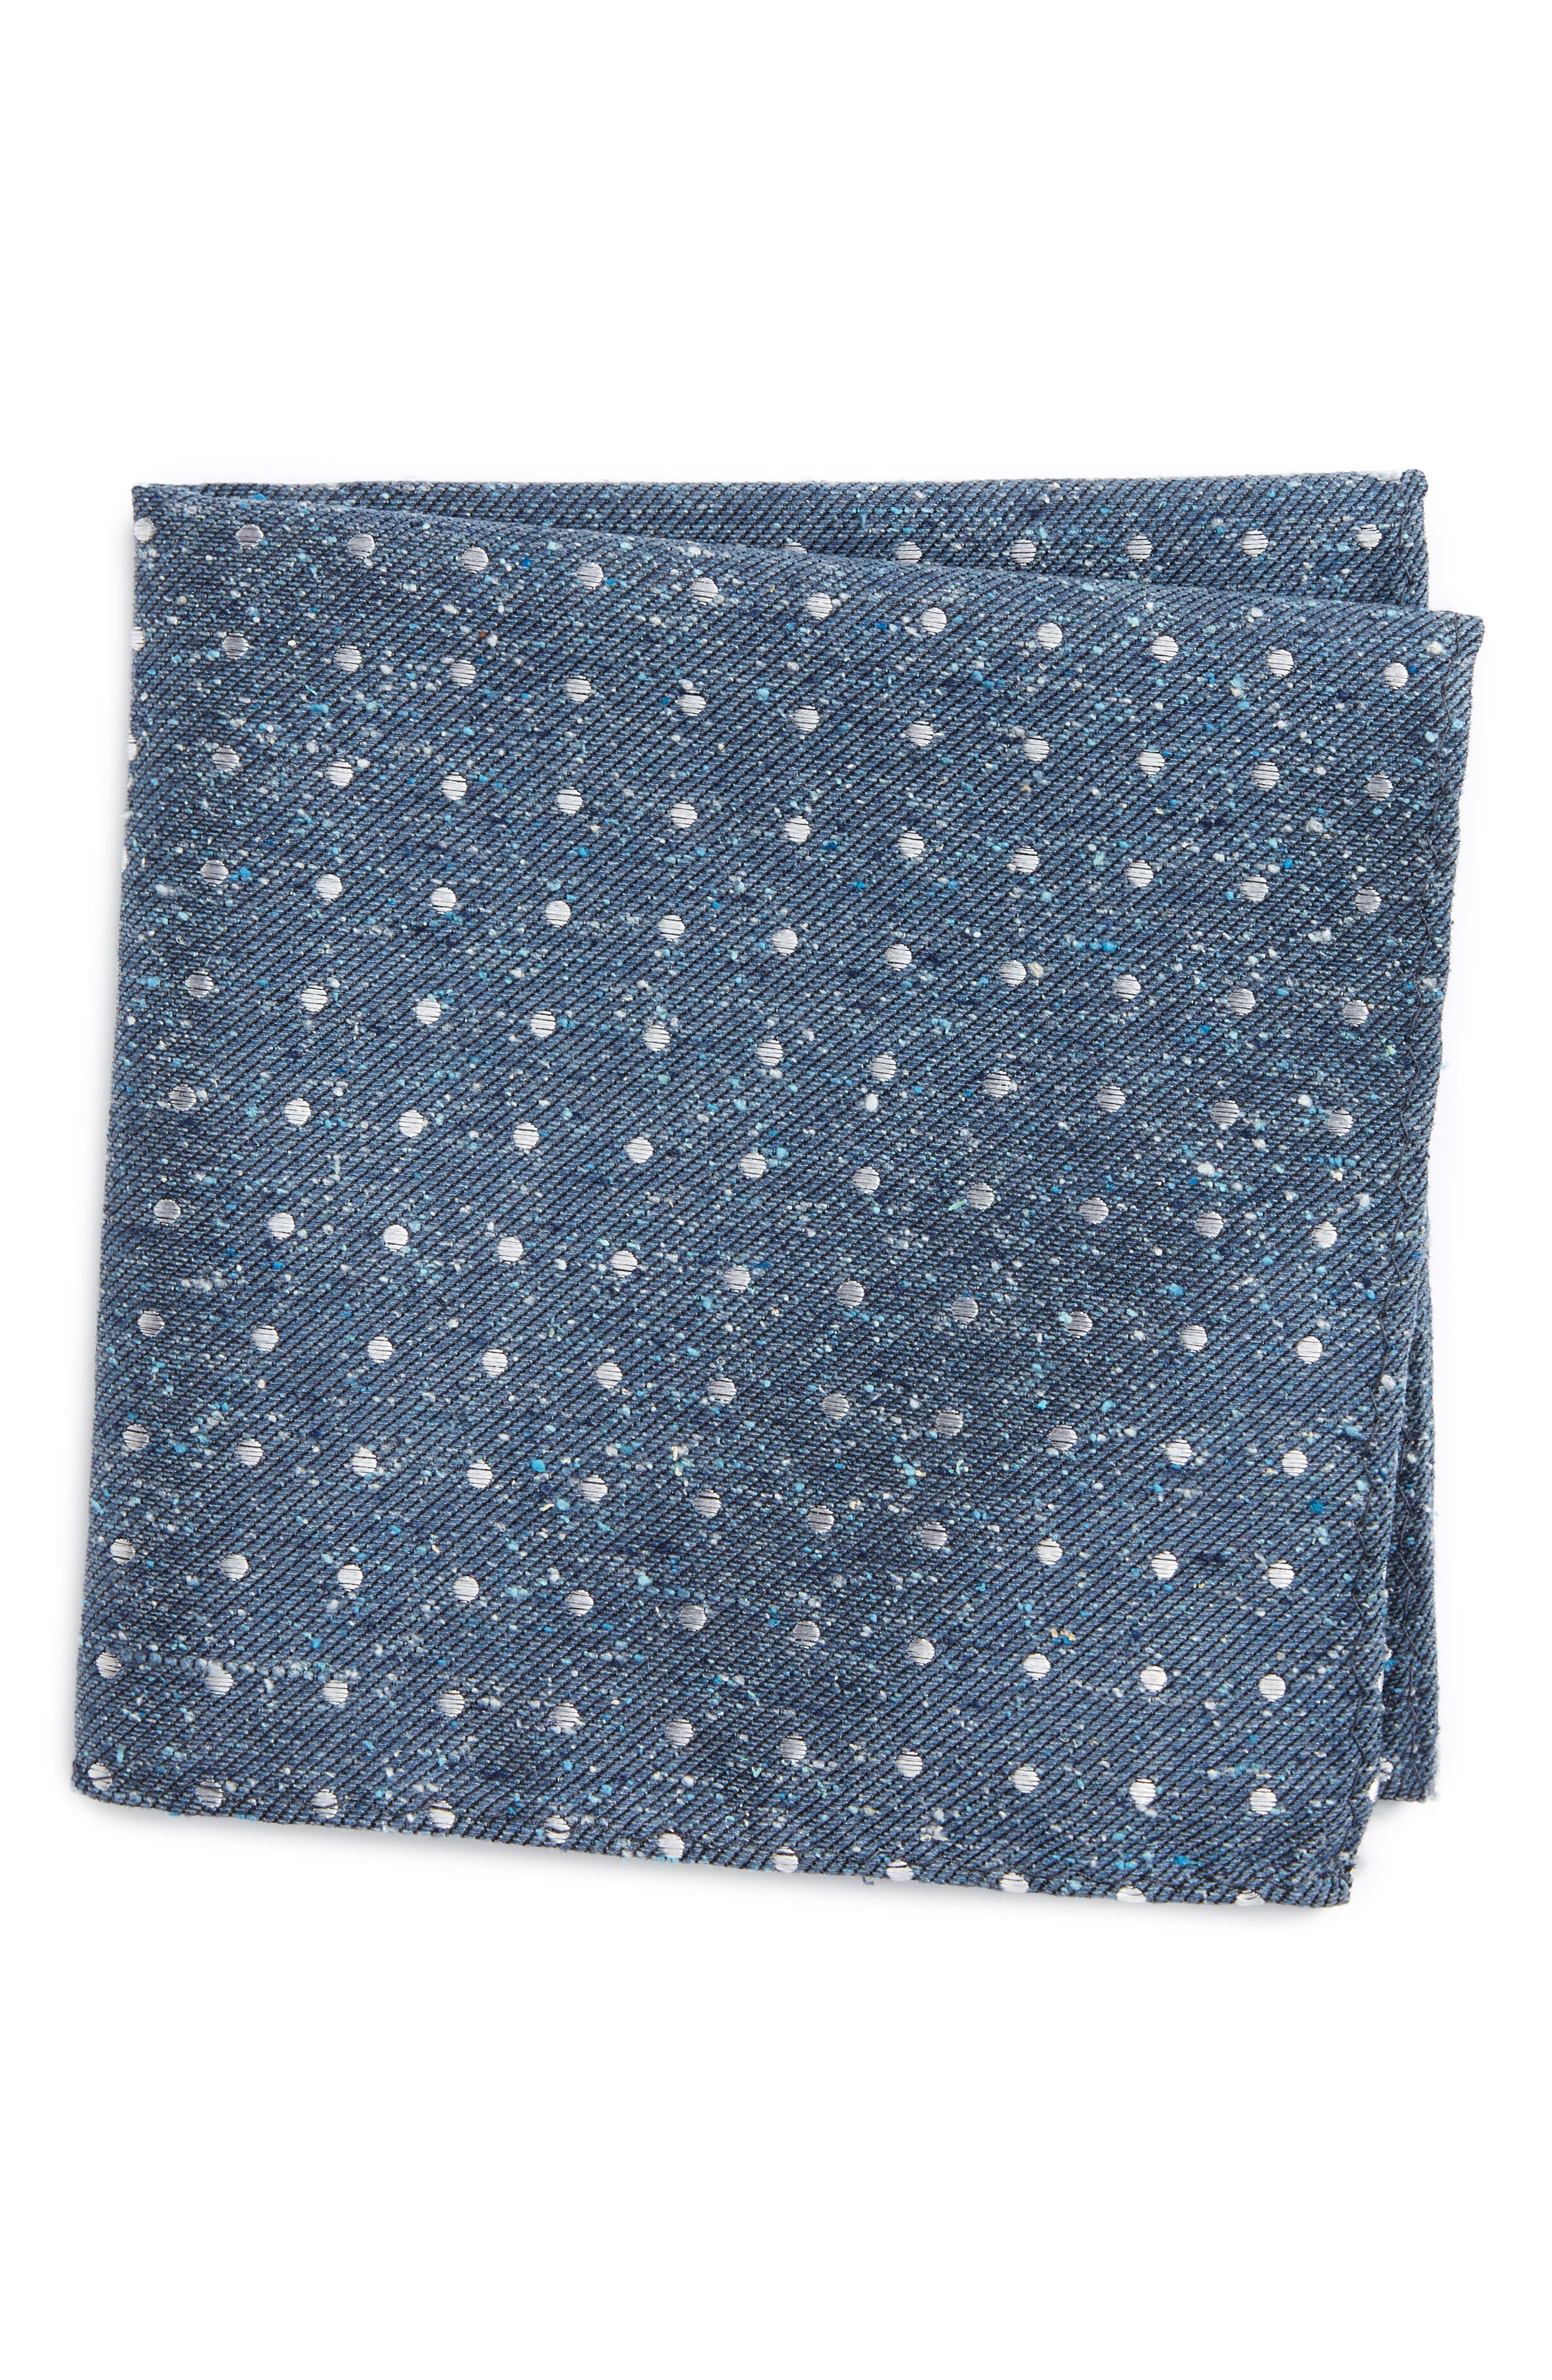 Main Image - The Tie Bar Knotted Dots Silk Pocket Square